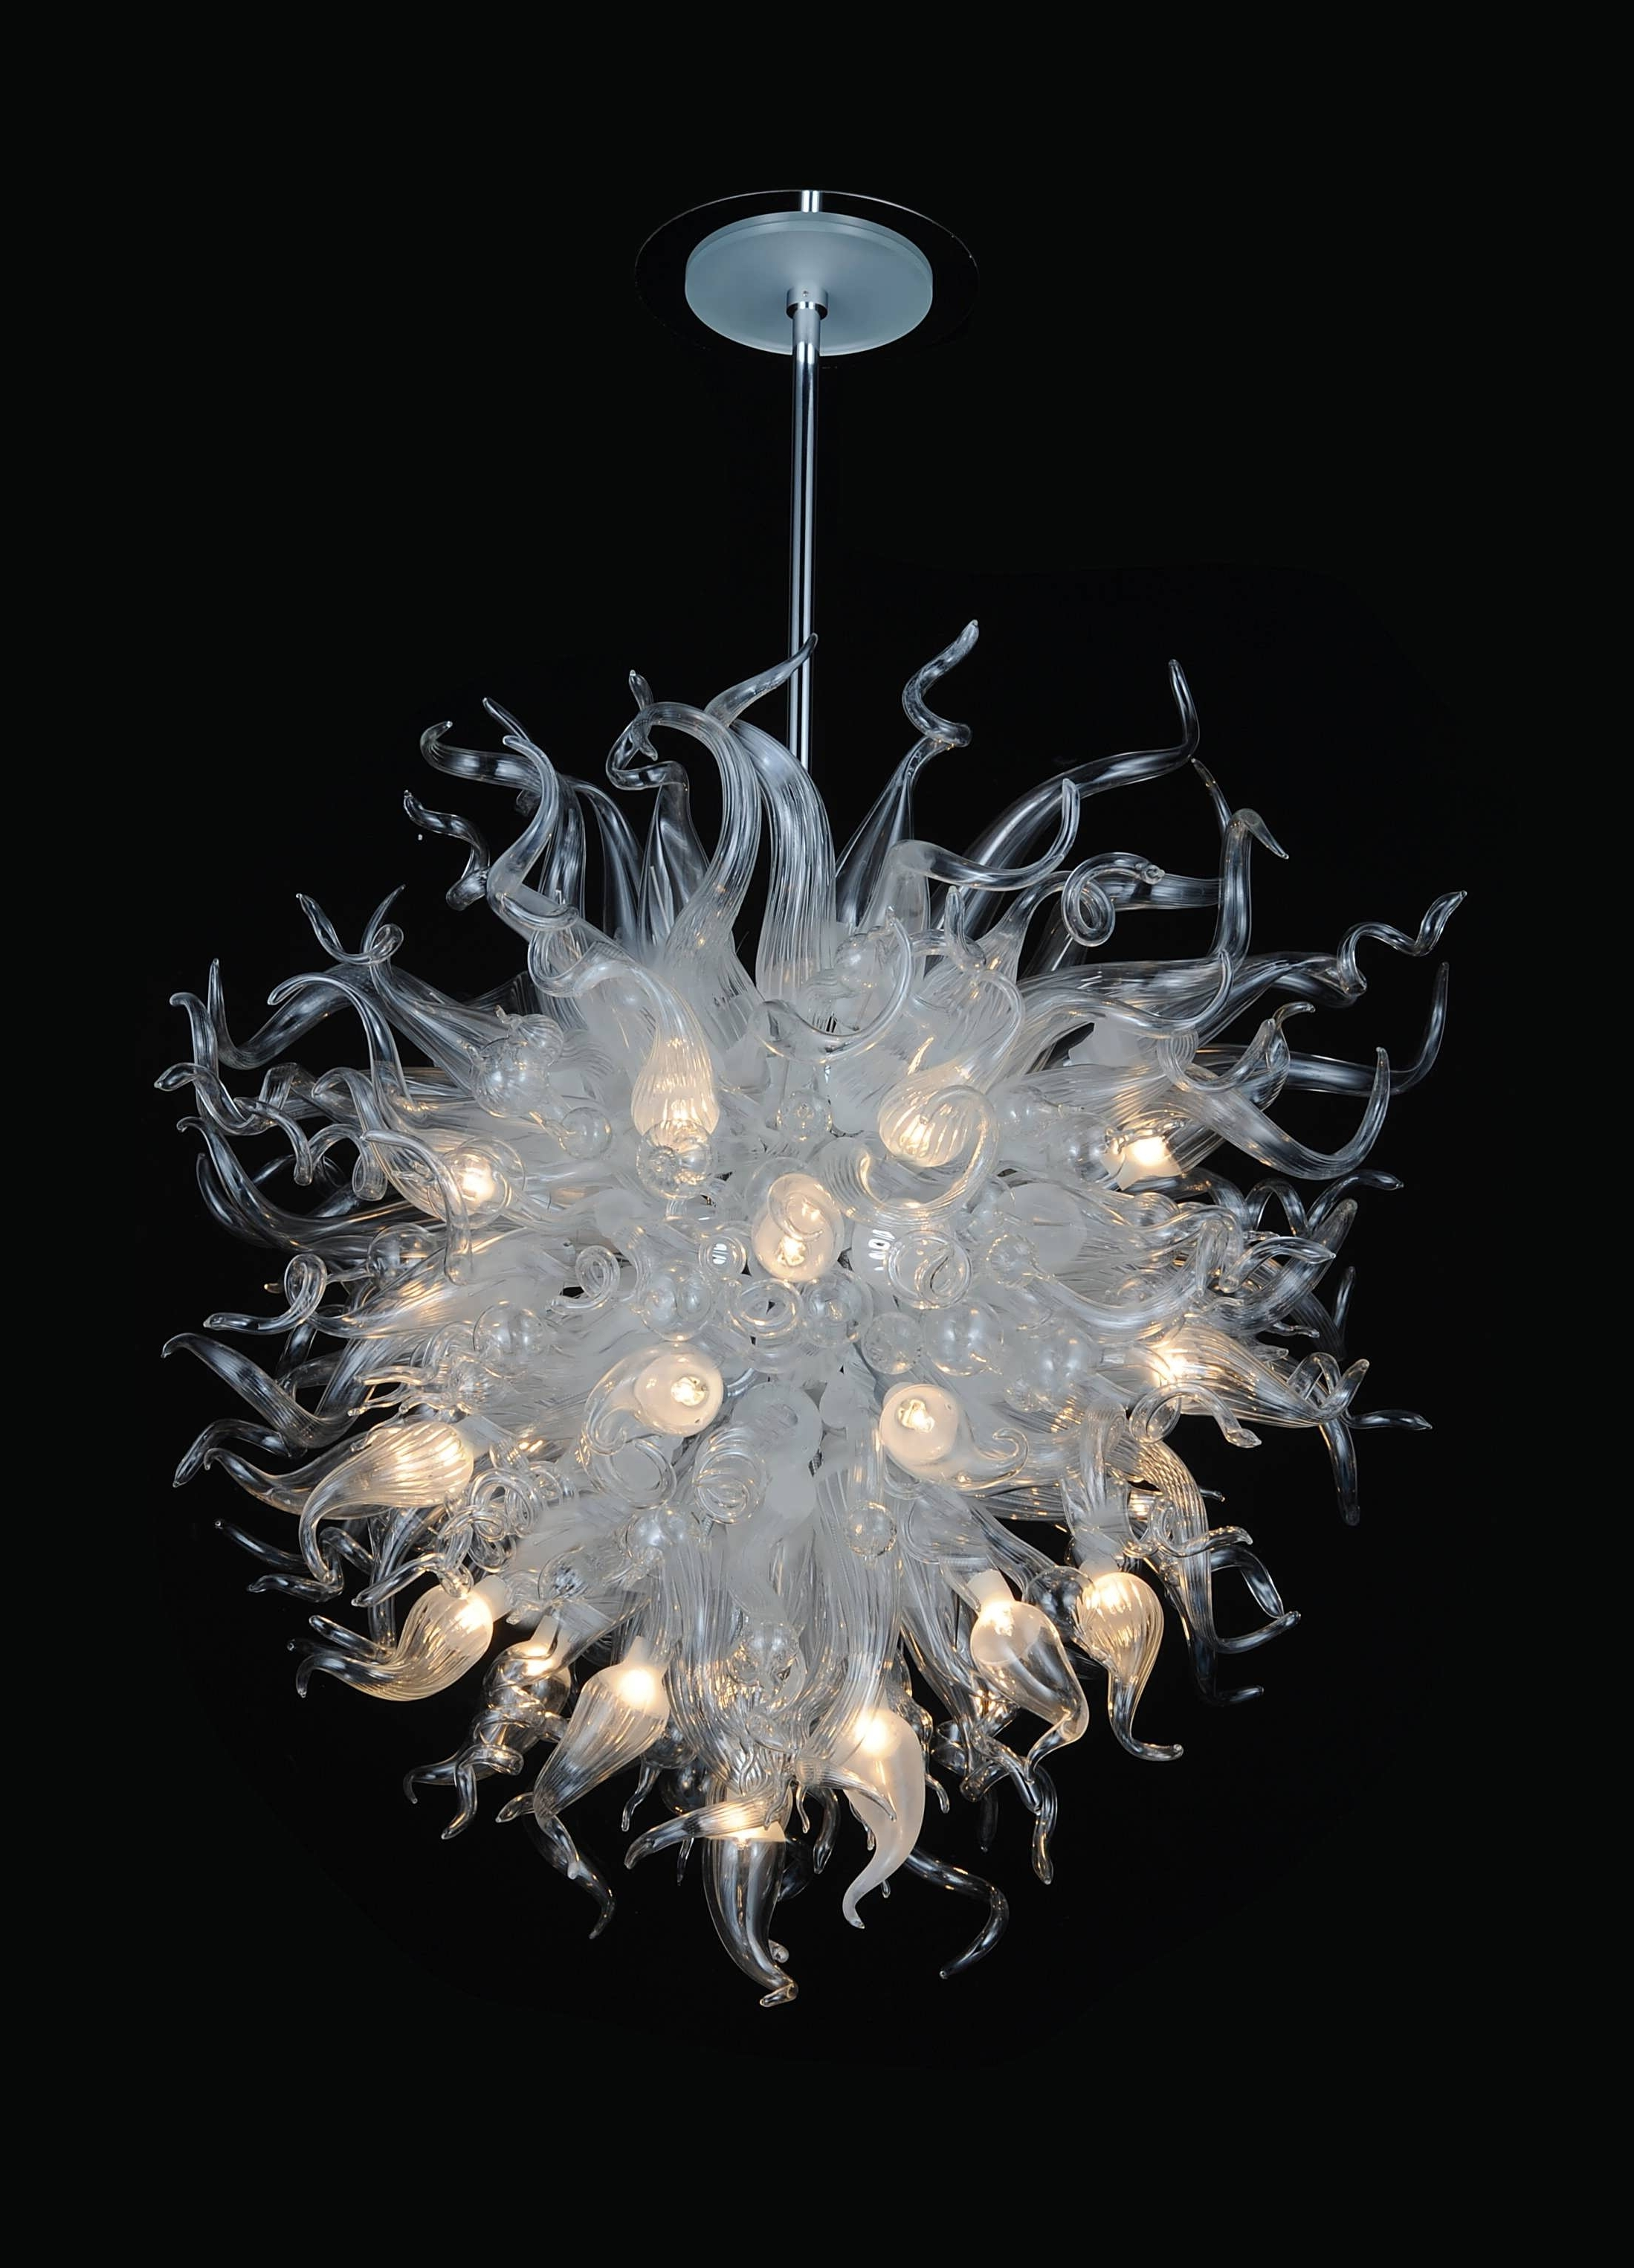 Glass Chandeliers For Well Liked Light : Glass Chandelier Shades Ceiling Lights Blown Artist Lighting (View 4 of 15)